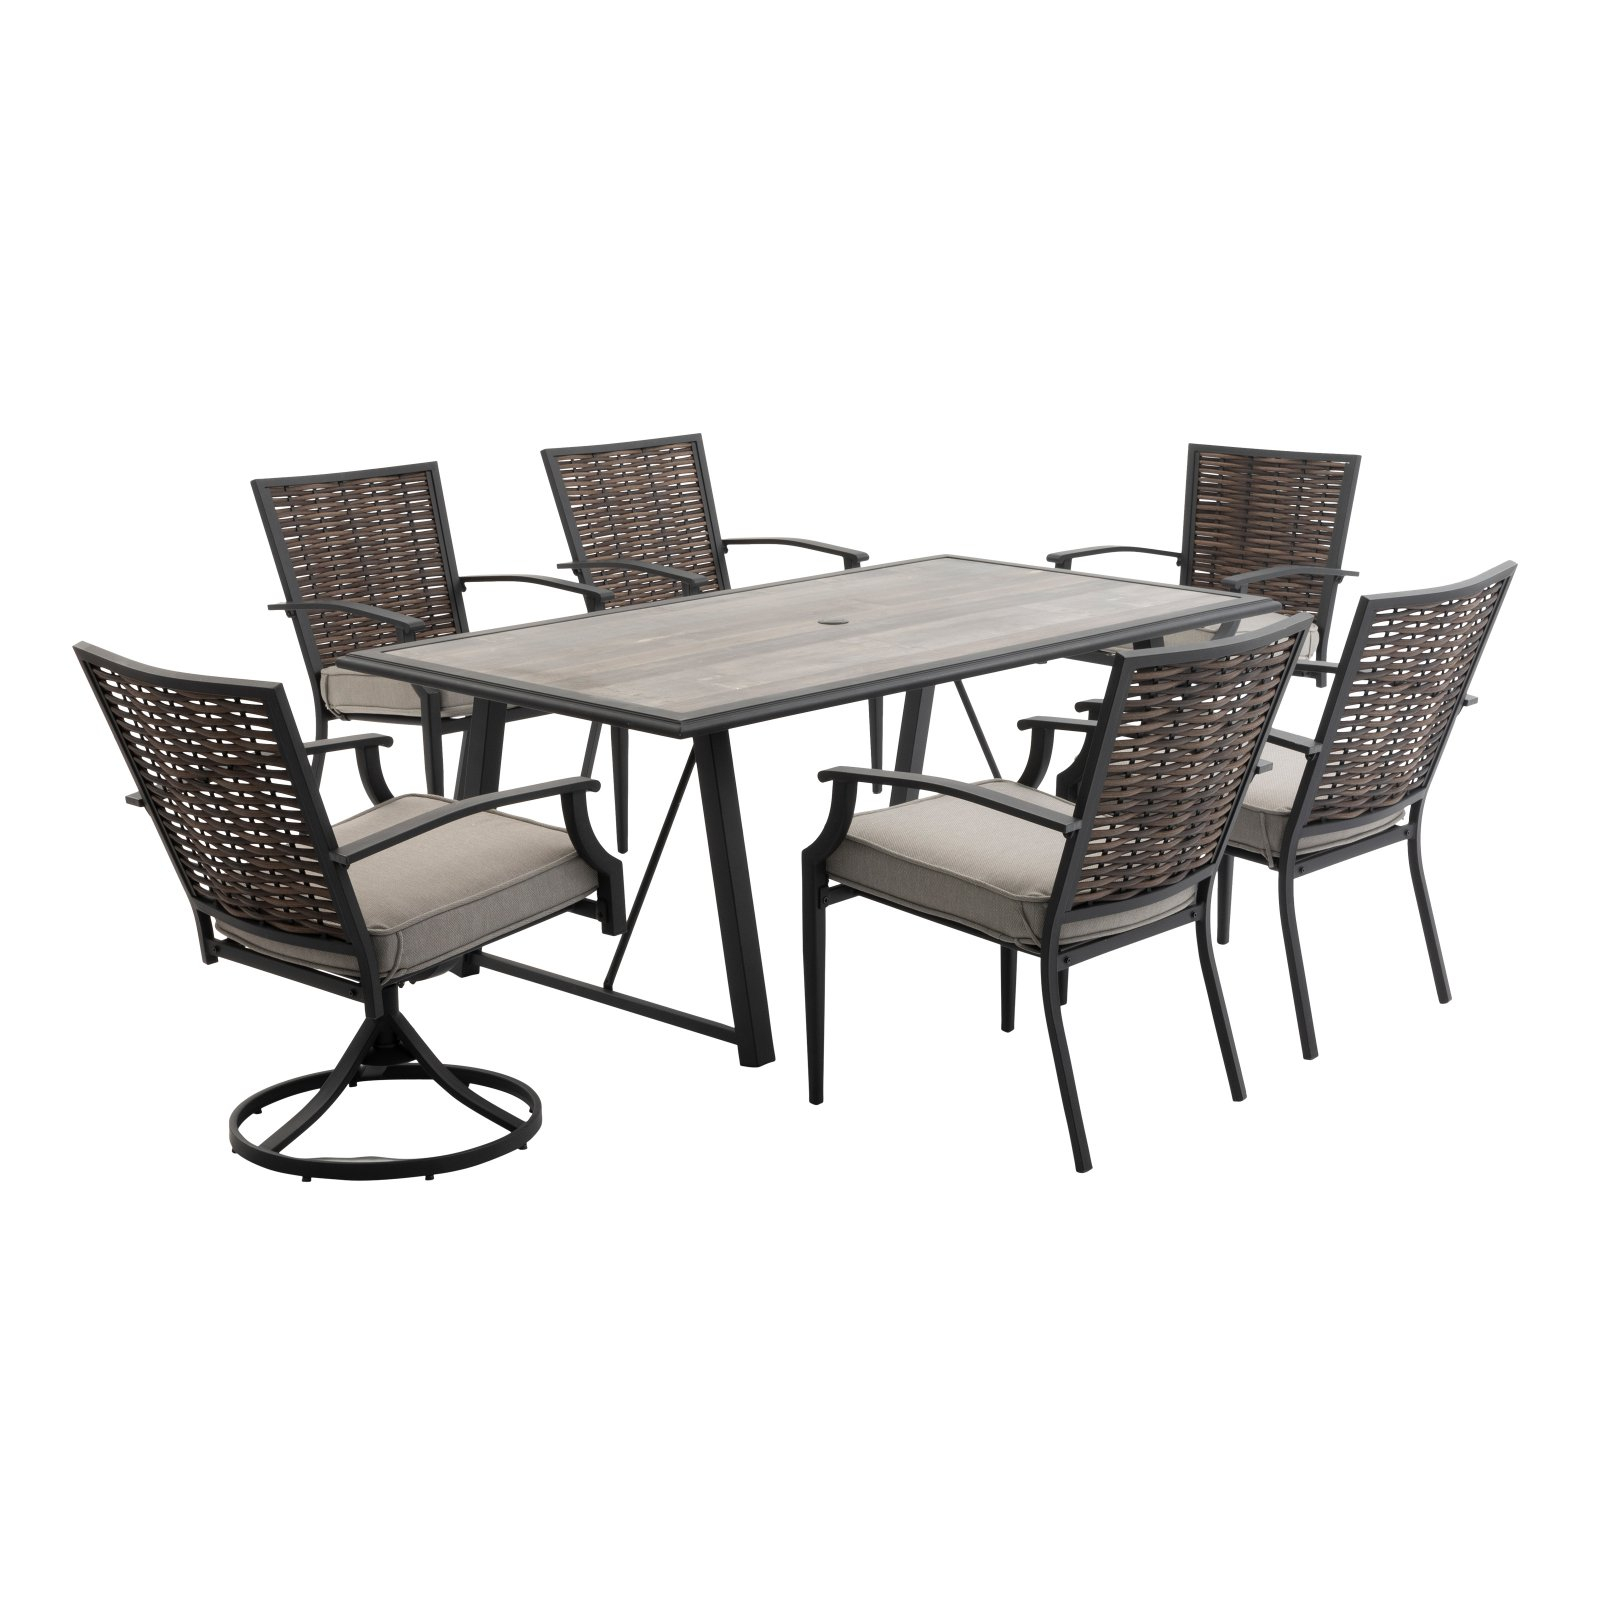 Ebern Designs Tarleton 5 Piece Dining Set – Walmart Inside Recent Tarleton 5 Piece Dining Sets (View 3 of 20)